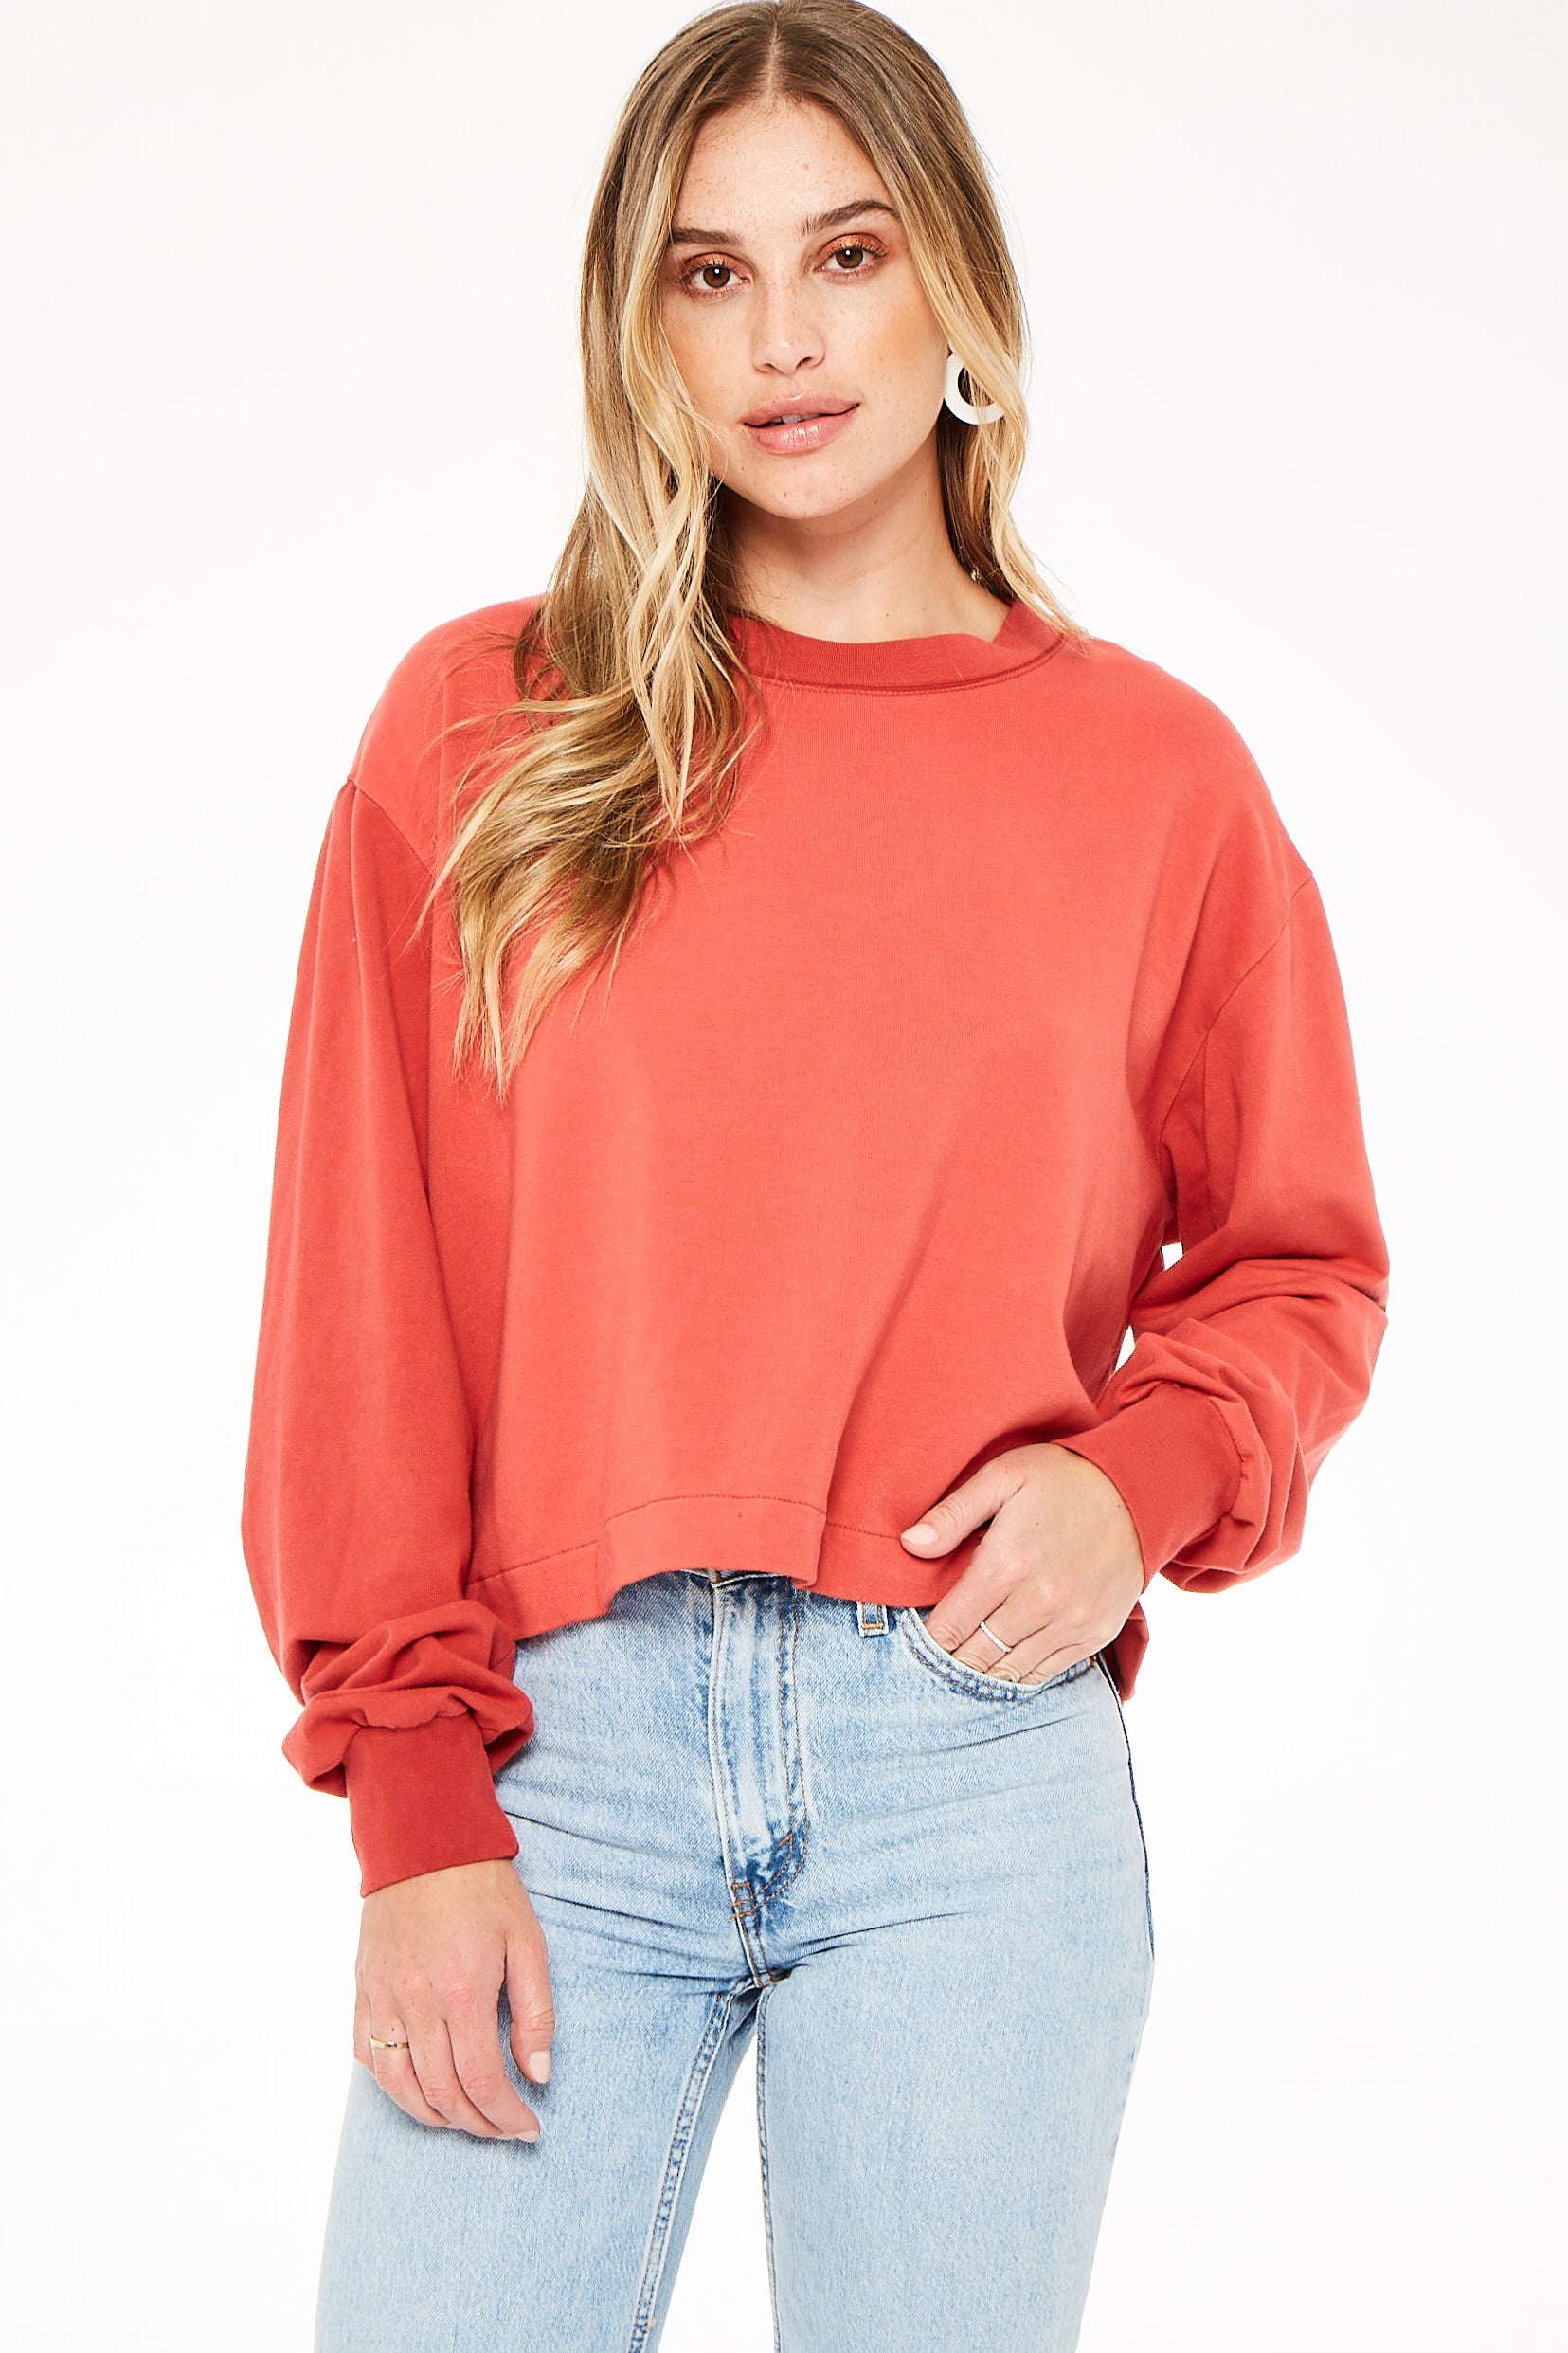 You Say Boxy Cropped Sweatshirt